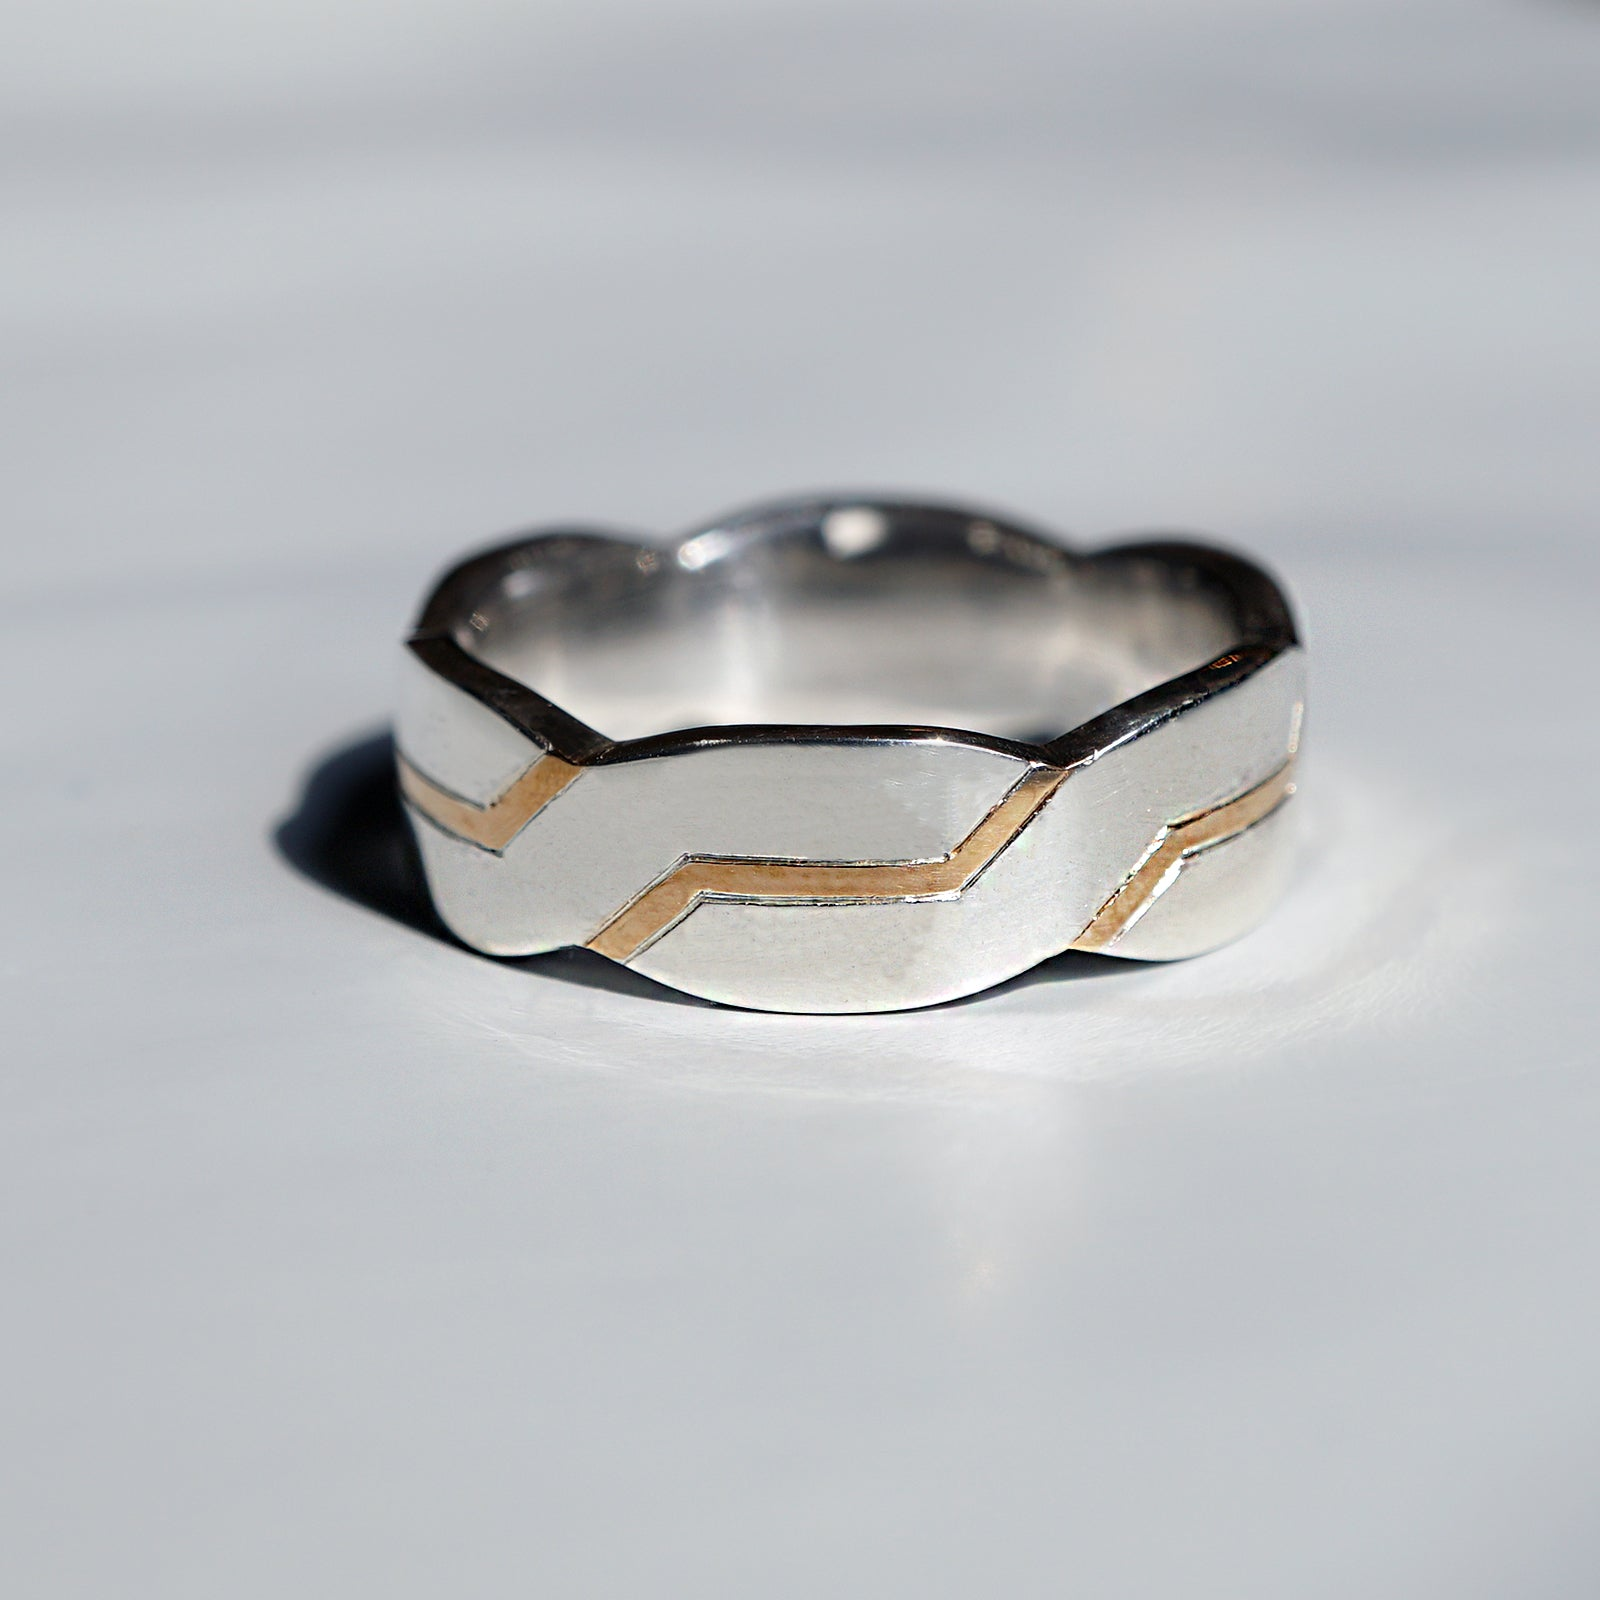 Silver/14K Zig Zag Ring, 7mm - Tippy Taste Jewelry